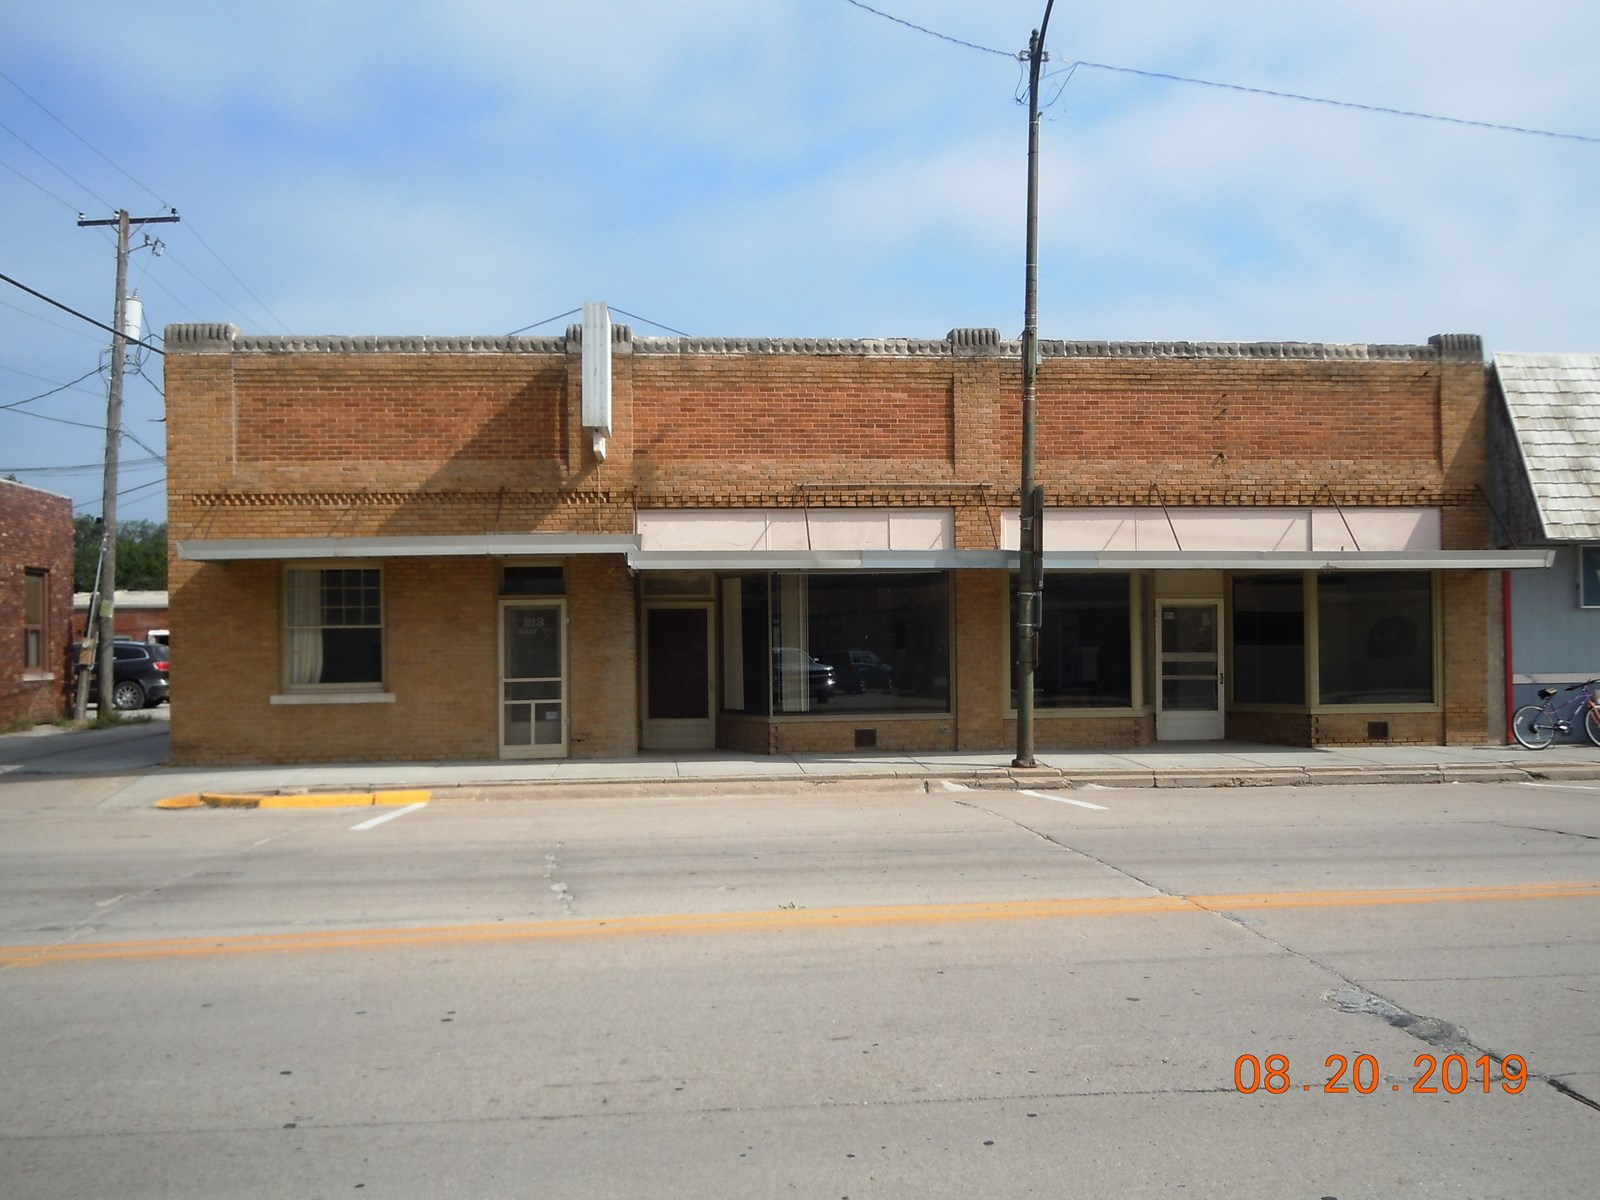 COMMERCIAL BUILDING FOR SALE IN LOGAN IOWA